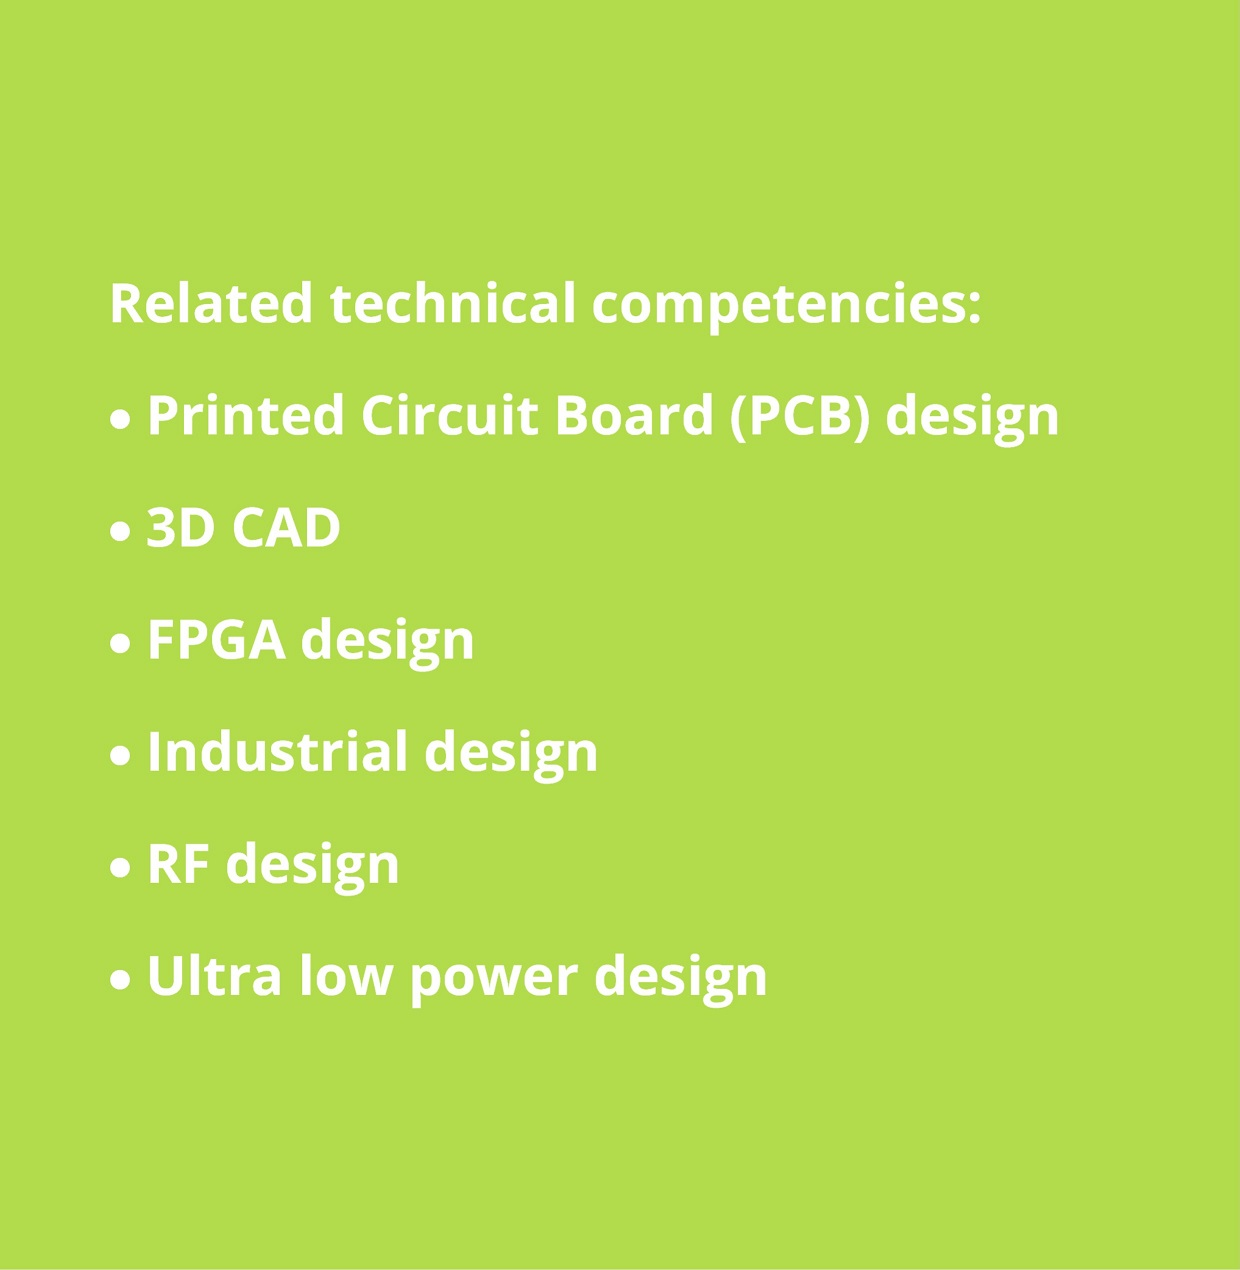 Design: printed circuit board (PCB) design; 3D CAD; FPGA design; industrial design; RF design; ultra low power design